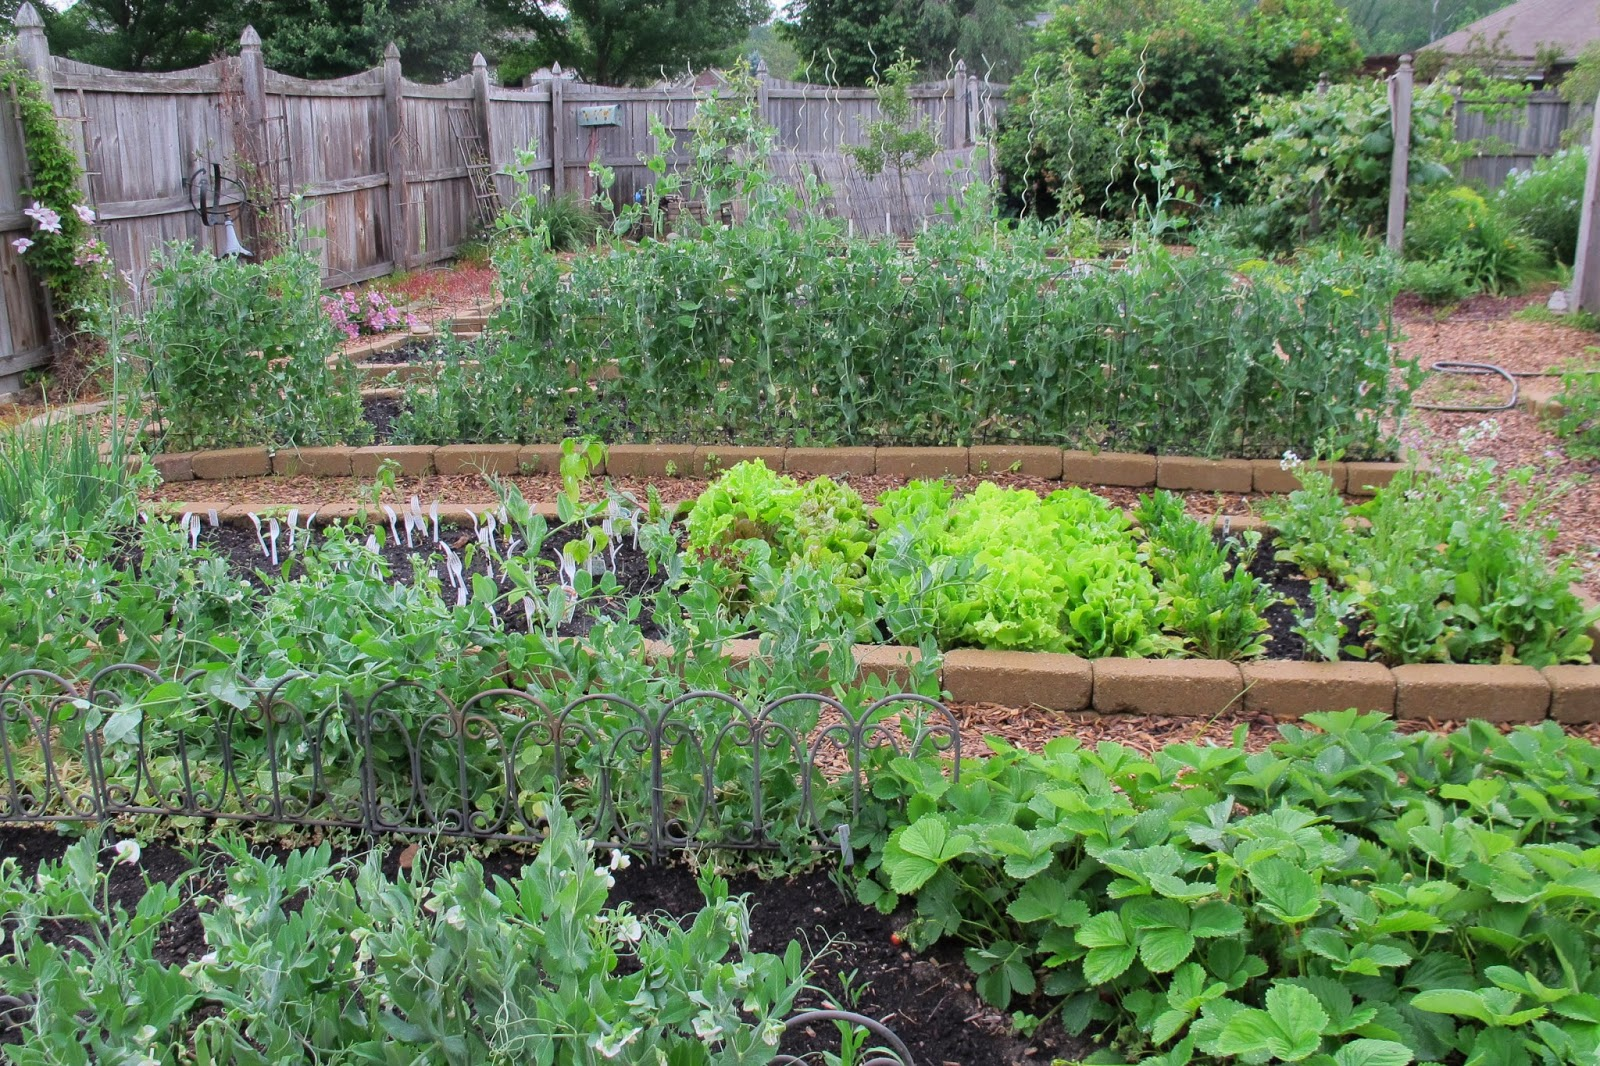 Vegetable Garden Ideas Minnesota dear friend and gardener - time is marching out of the garden